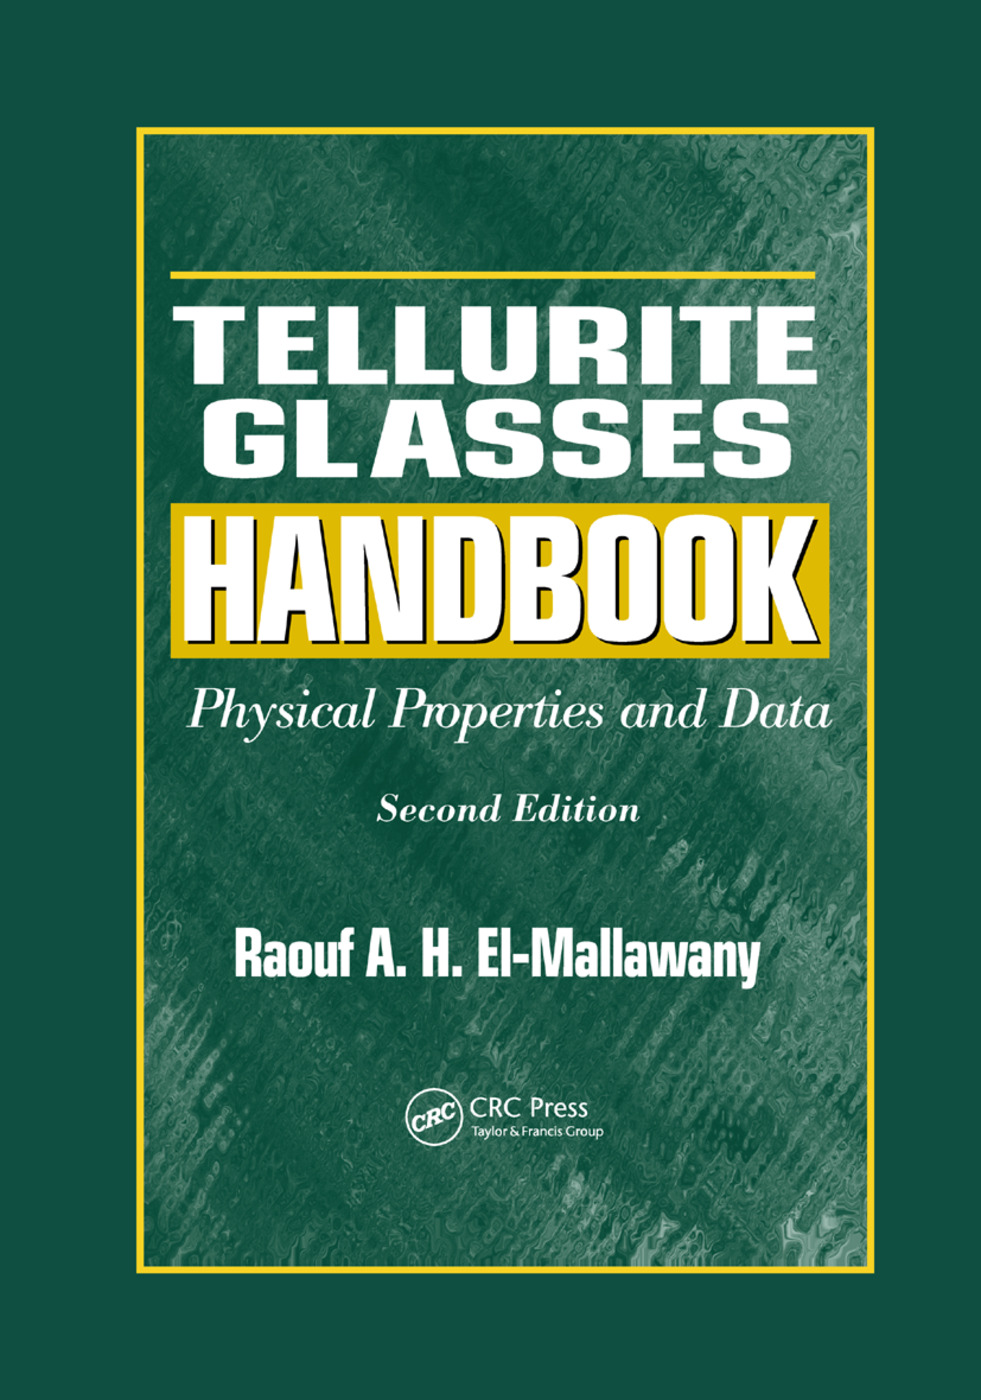 Tellurite Glasses Handbook: Physical Properties and Data, Second Edition, 2nd Edition (Paperback) book cover